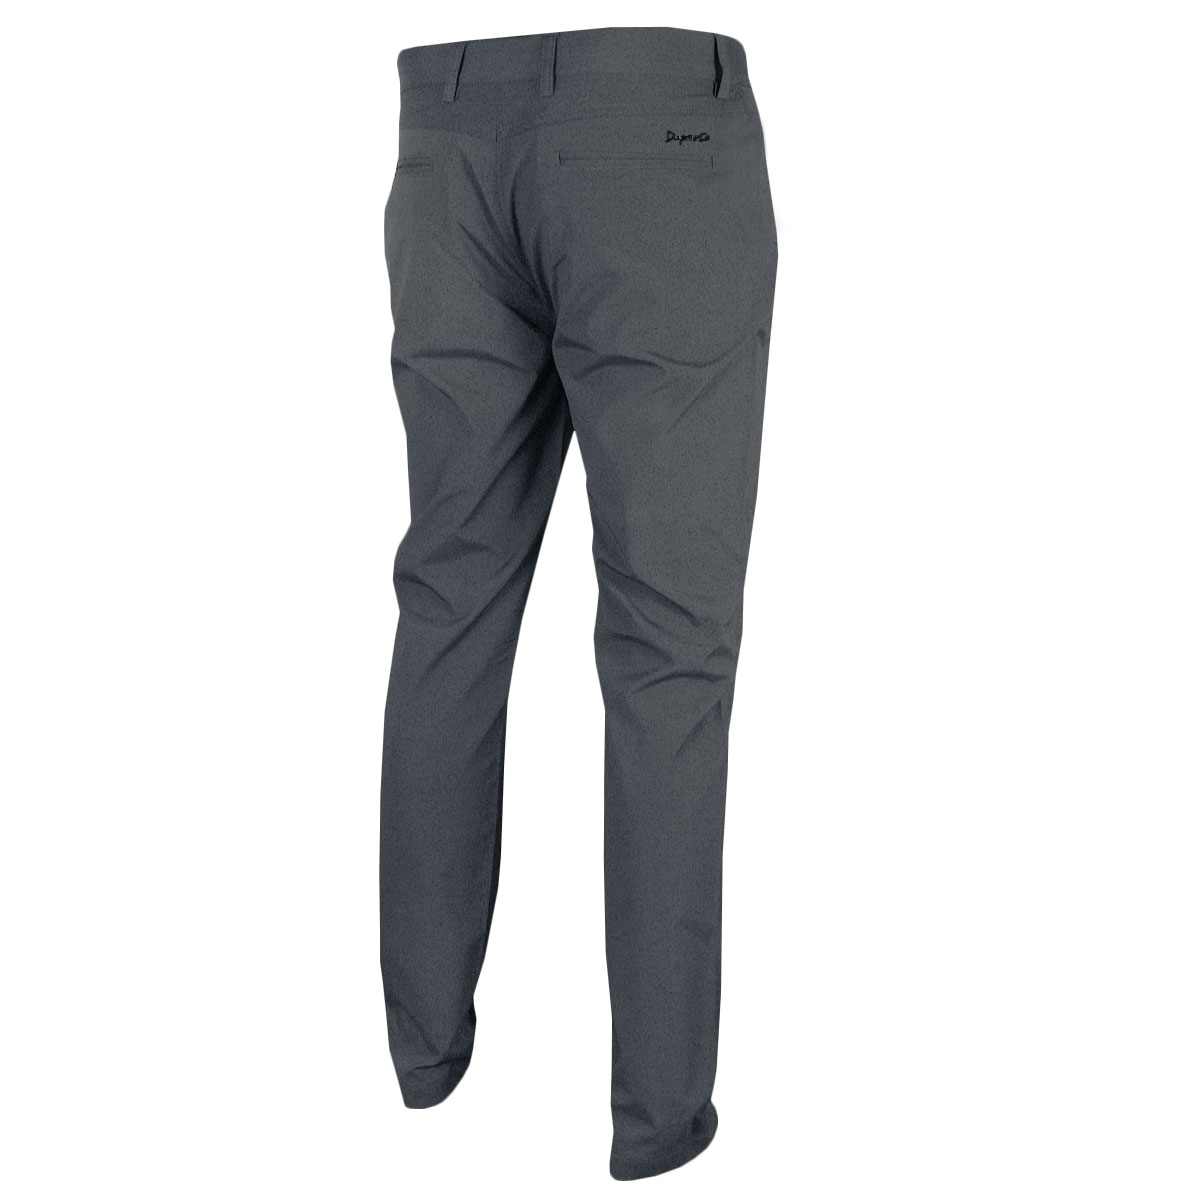 Dwyers-amp-Co-Mens-Micro-Tech-Golf-Technical-Water-Resistant-Trousers-33-OFF-RRP thumbnail 3